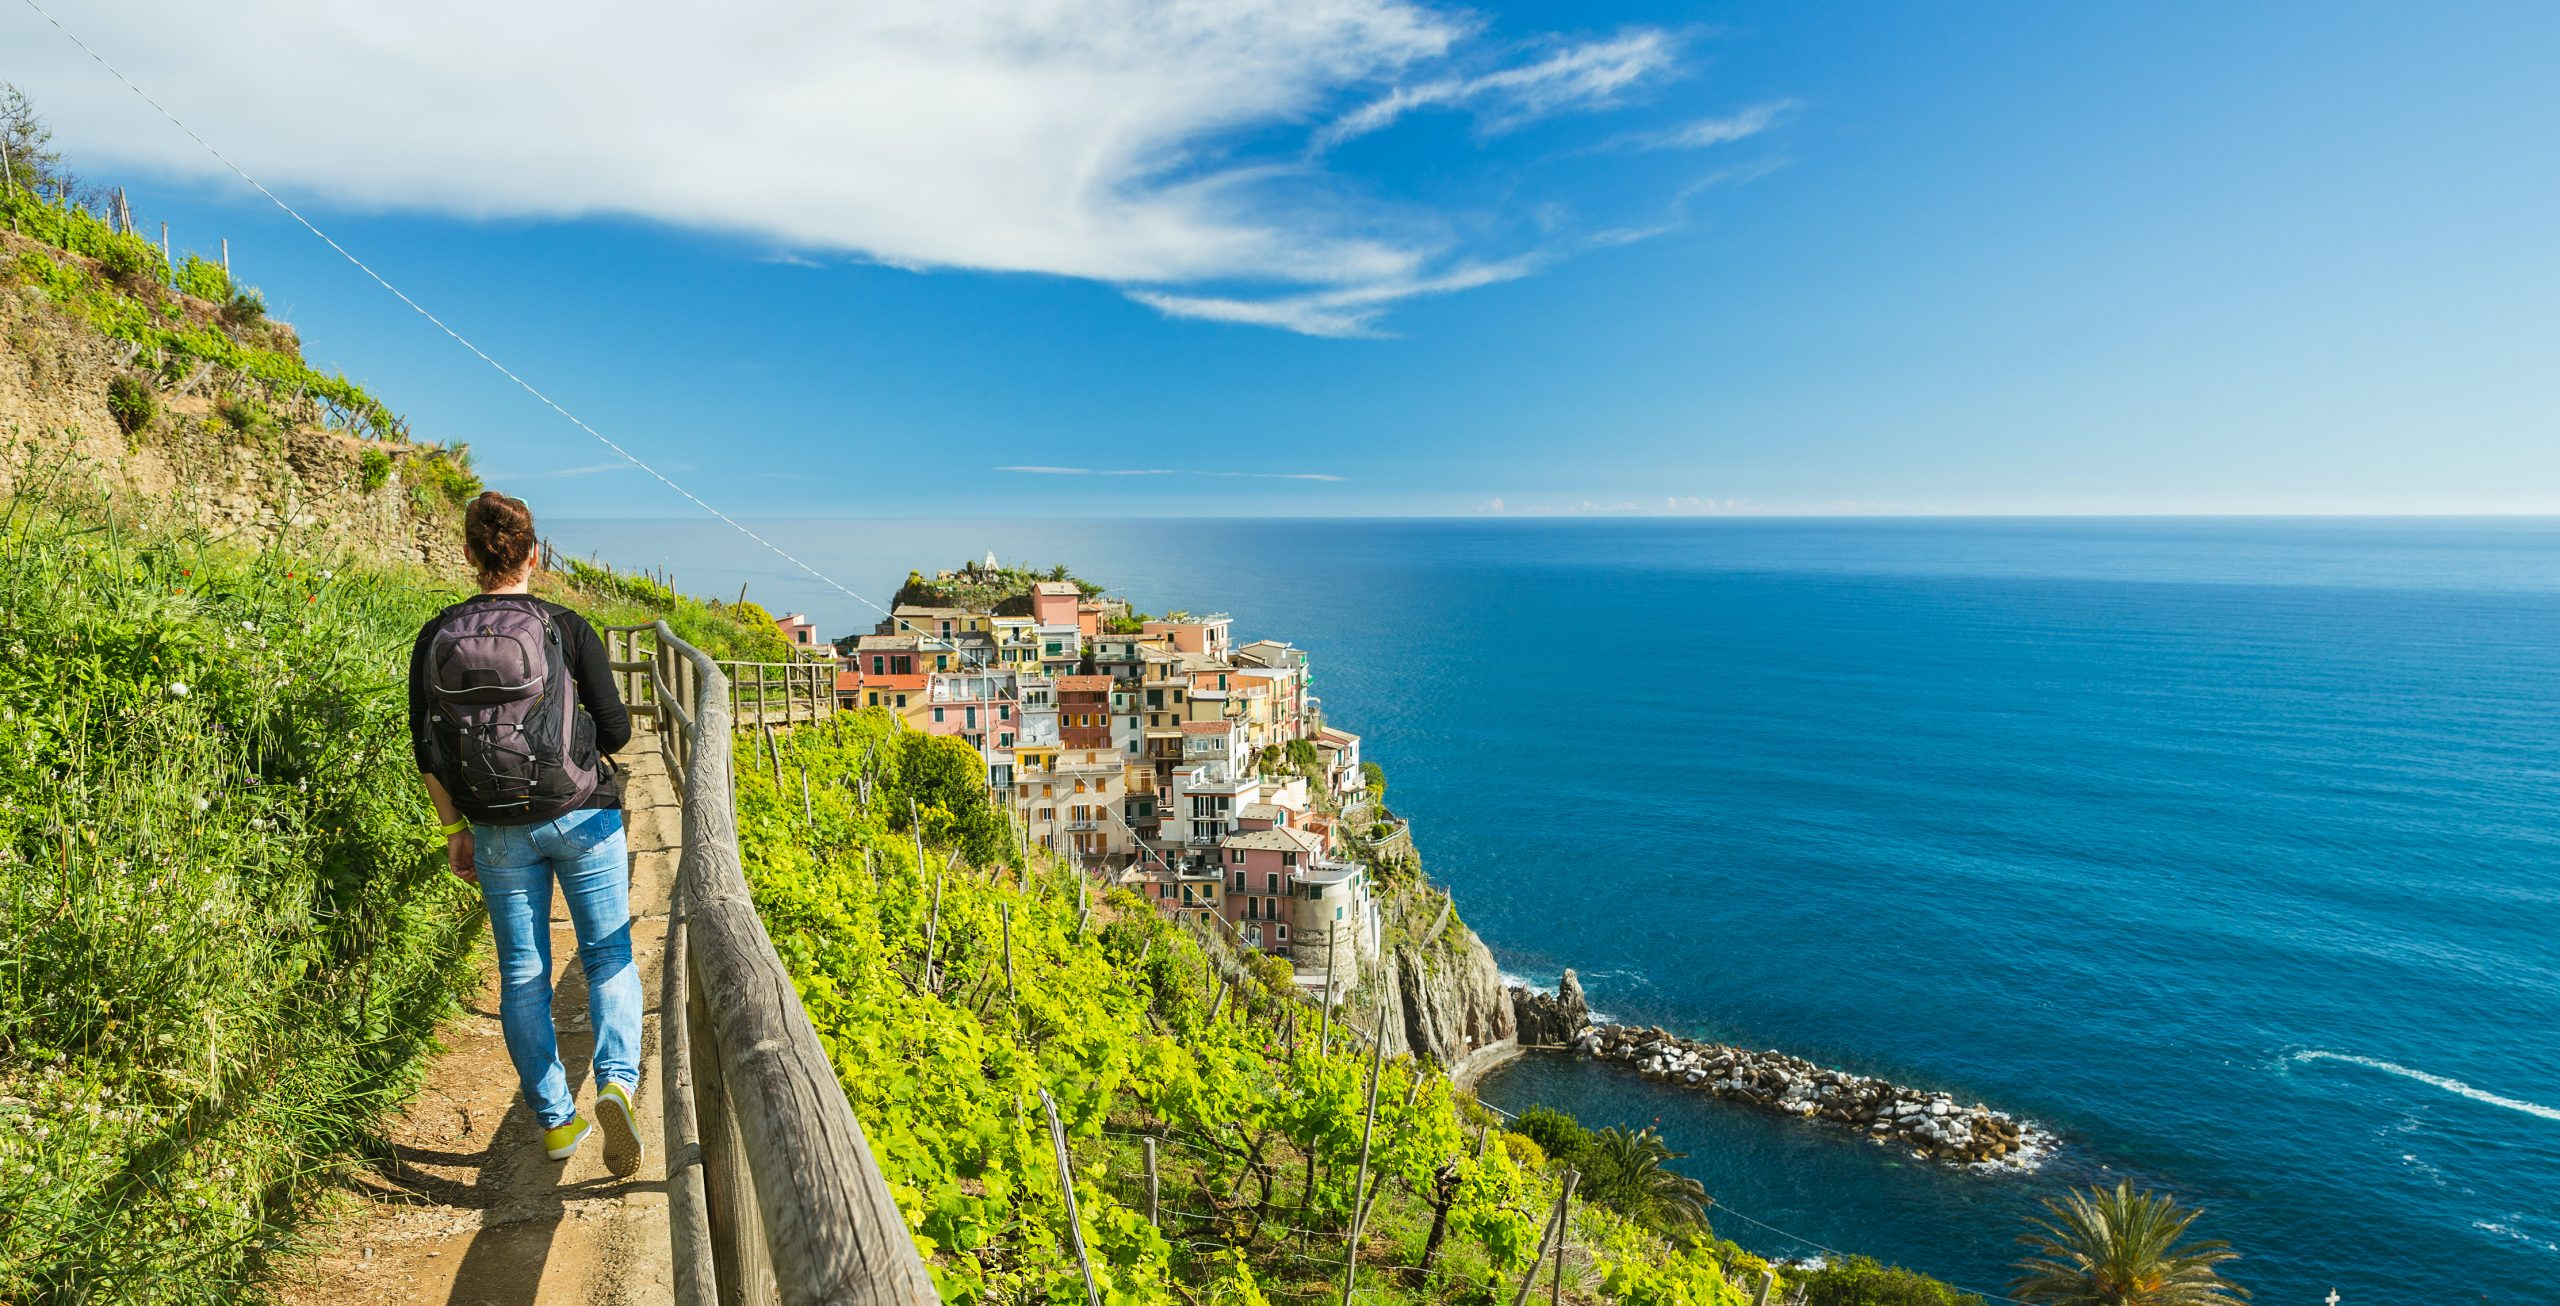 Woman walking on hiking trail in Cinque Terre, Italy